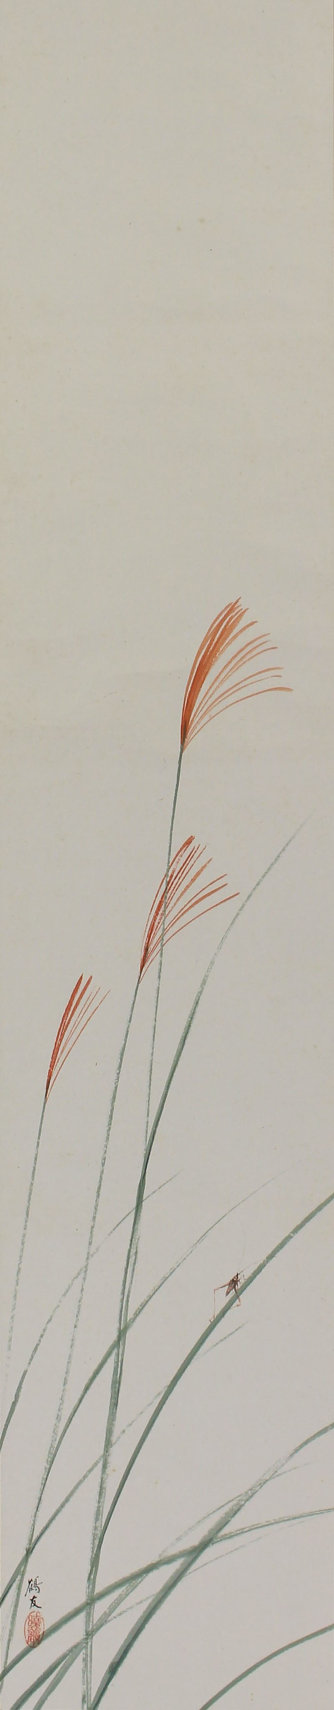 Image result for Japanese paintings and artwork pampas grass